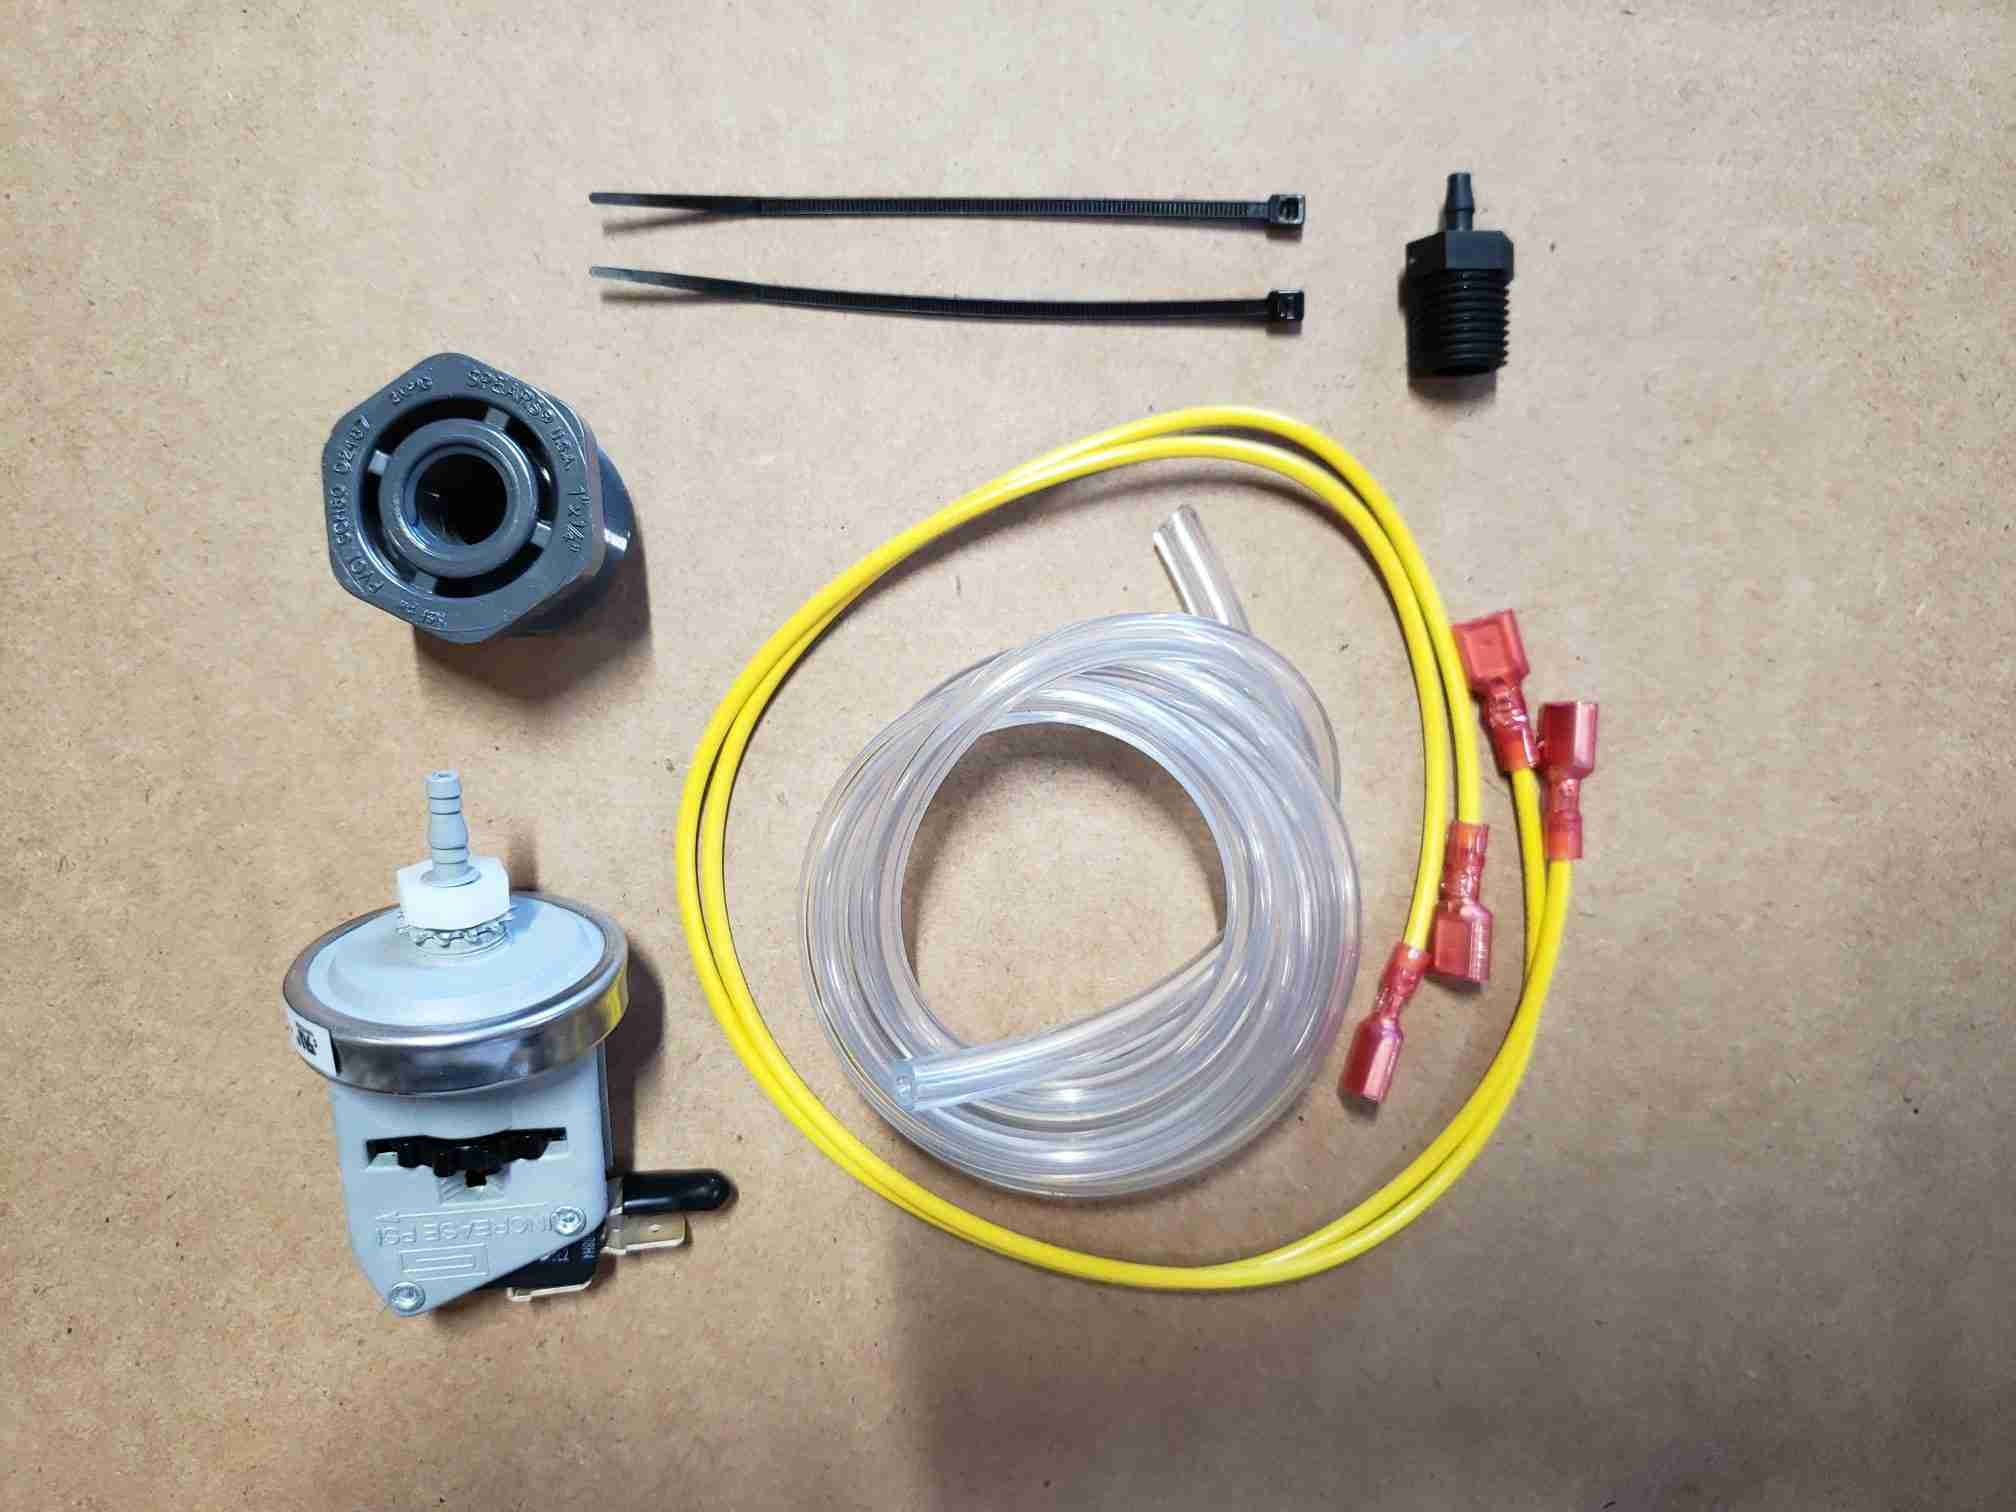 Overview of Water Pressure Kit